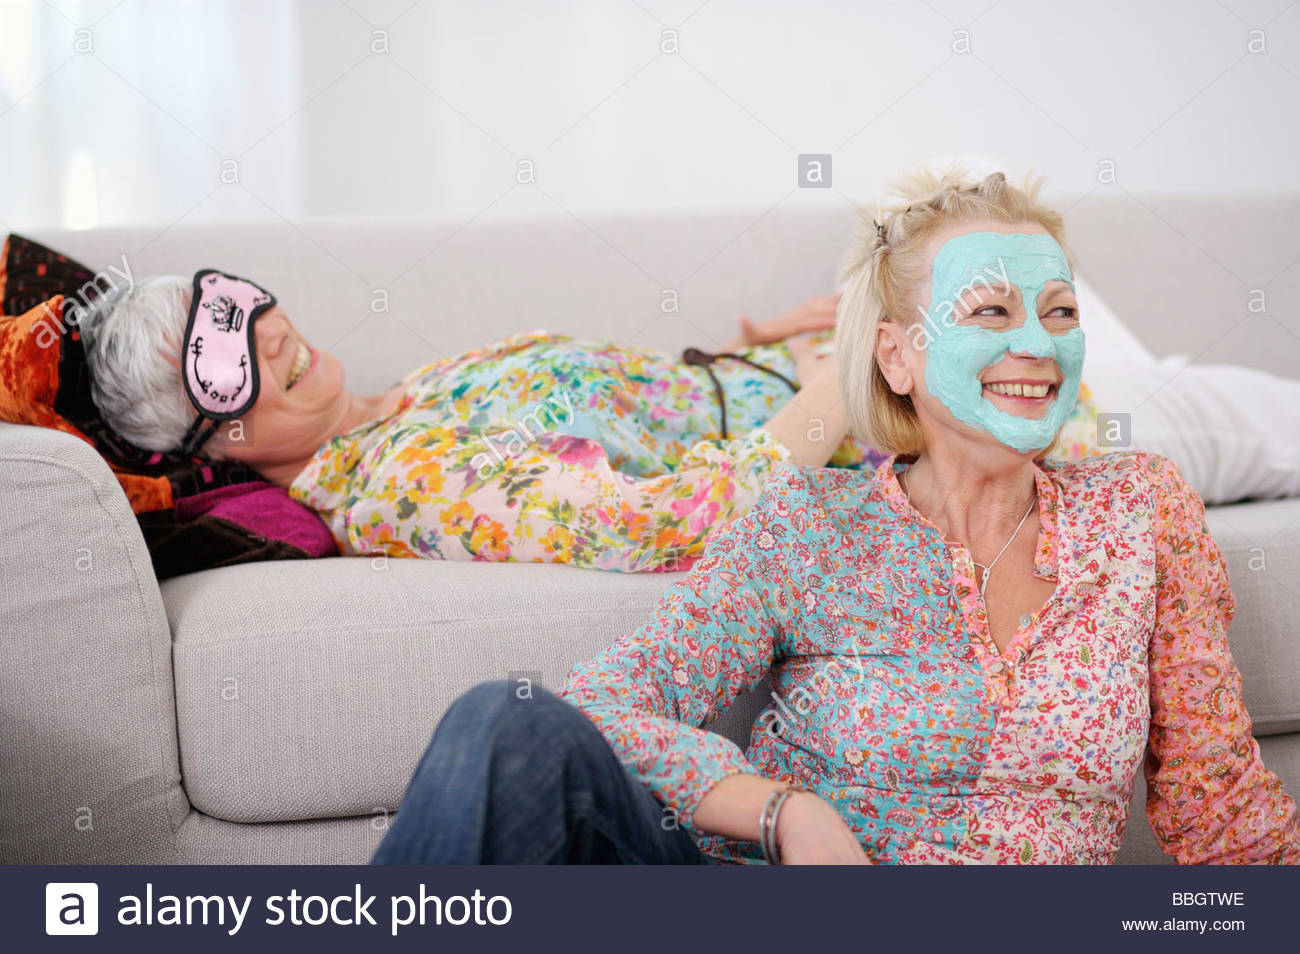 Senior women pampering themselves and relaxing living room - Stock Image